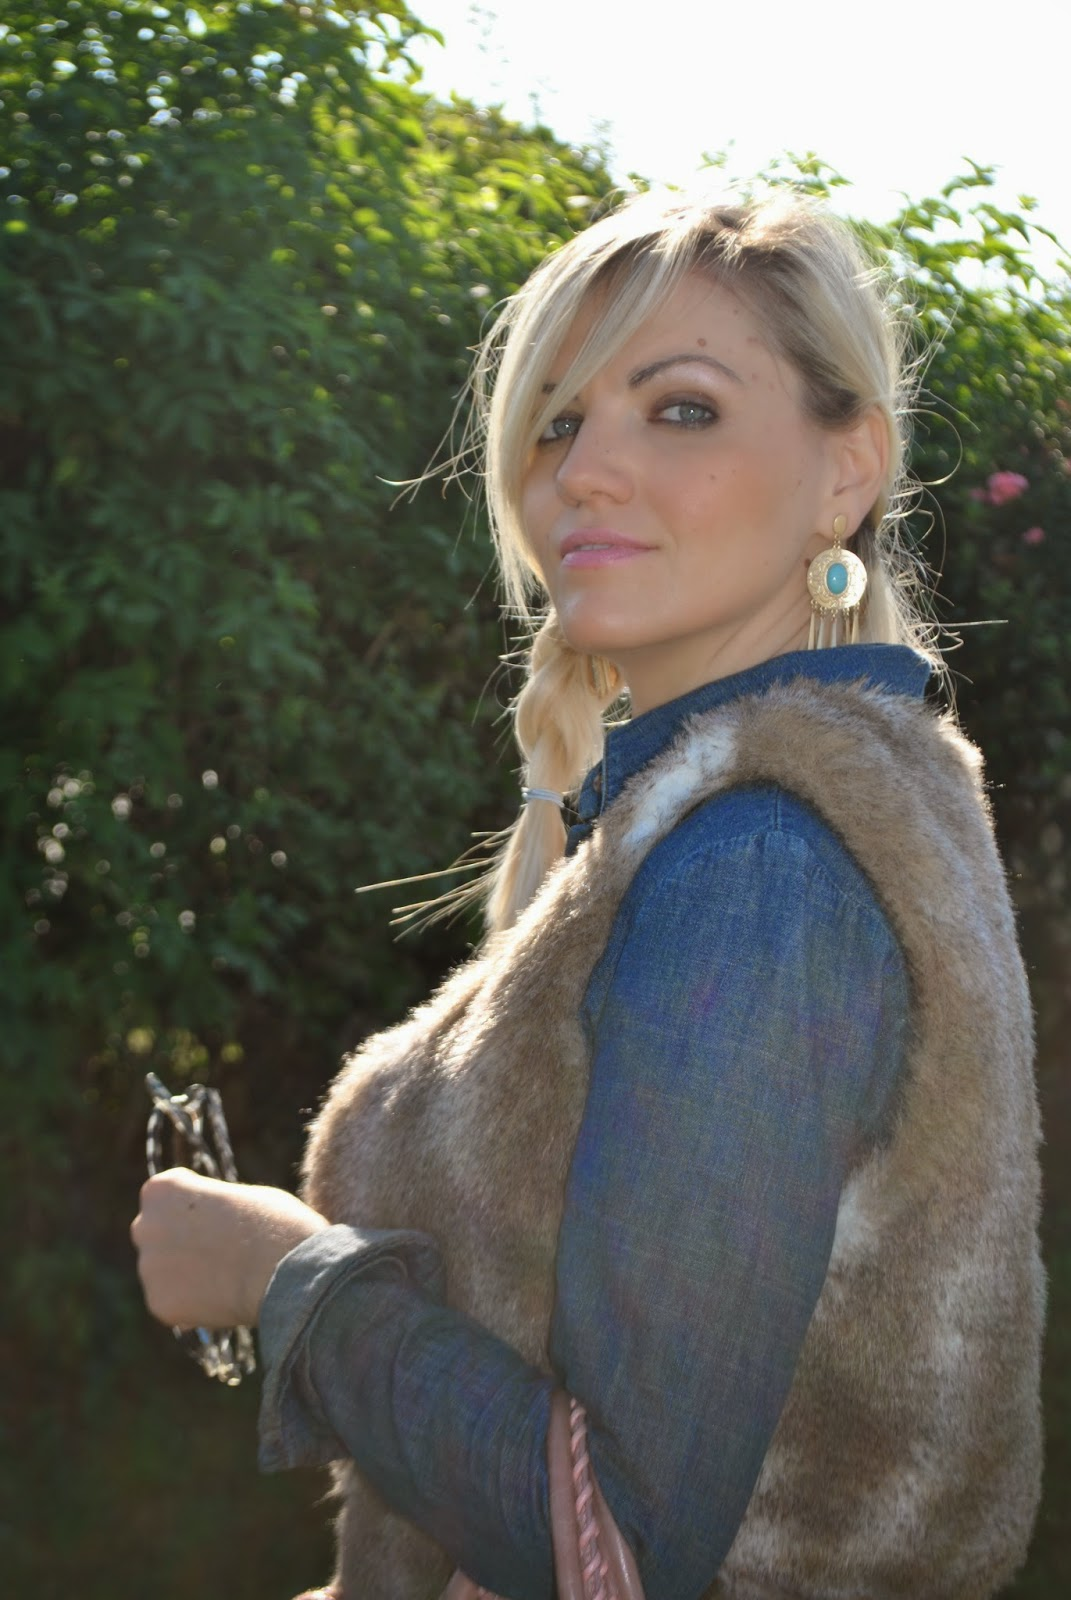 outfit in denim denim total look how to wear denim shirt outfit gilet pelliccia how to wear fur vest outfit cuissardes outfit jeans skinny abbinamenti cuissardes how to wear cuissardes abbinamenti camicia jeans come abbinare la camicia di jeans camicia in denim tendenze autunno inverno 2014 2015camicia di jeans borsa rosa cipria balenciaga occhiali da sole carrera collana etnica majique ethnic necklace majique london orecchini majique london oro e pietre azzurre earrings majique gold and turquoise stone earrings majique fashion blog italiani fashion blogger italiane fashion blogger milano fashion blogger bionde ragazze bionde fashion blog milano acconciatura treccia laterale occhiali da sole carrera mariafelicia magno mariafelicia magno fashion blogger colorblock by felym outfit autunnali outfit casual outfit casual autunnali outfit novembre 2014   autumnal outfit cuissardes boots denim shirt faux fur vest fashion bloggers italy italian girl